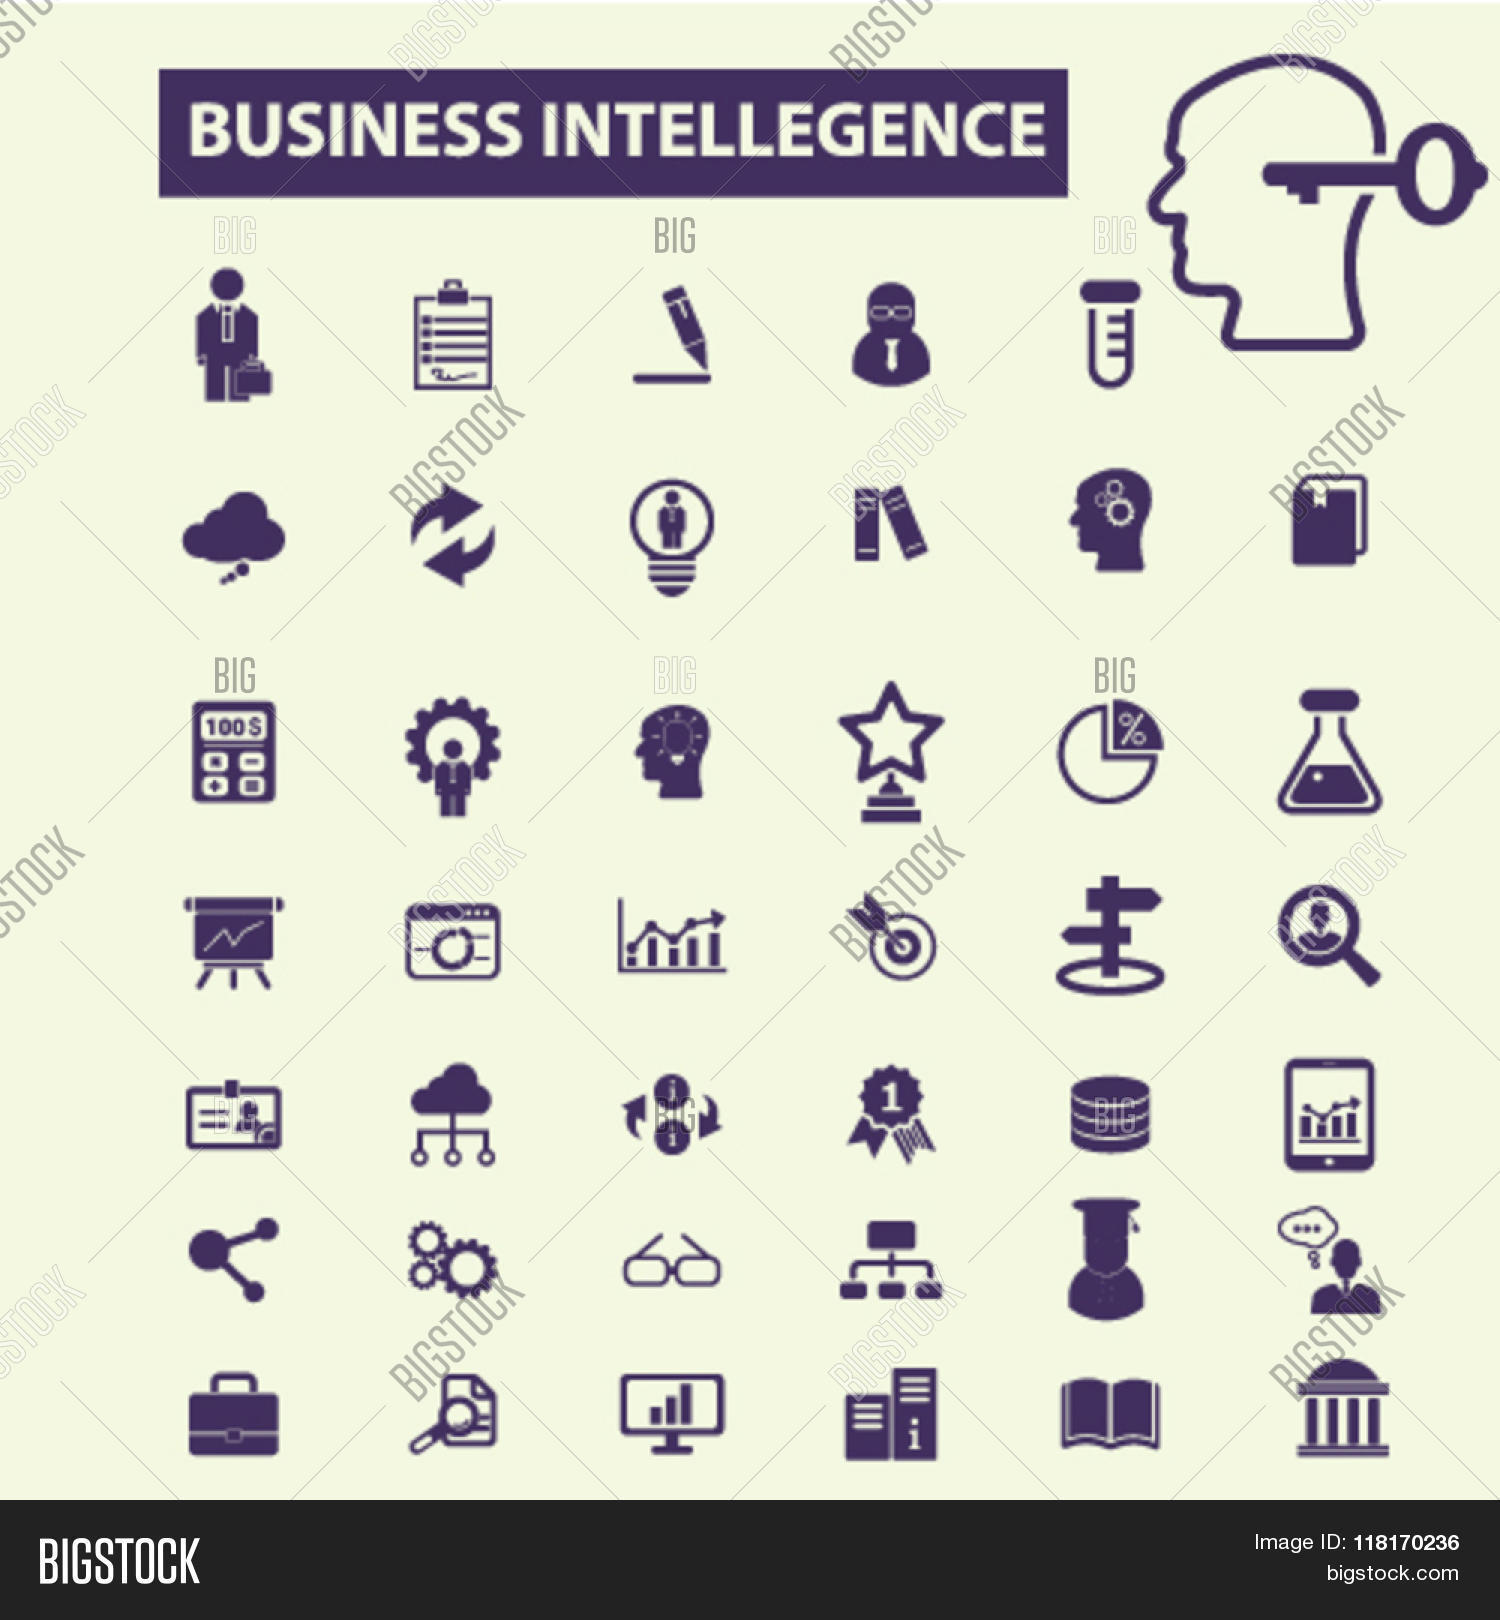 Research papers on business intelligence